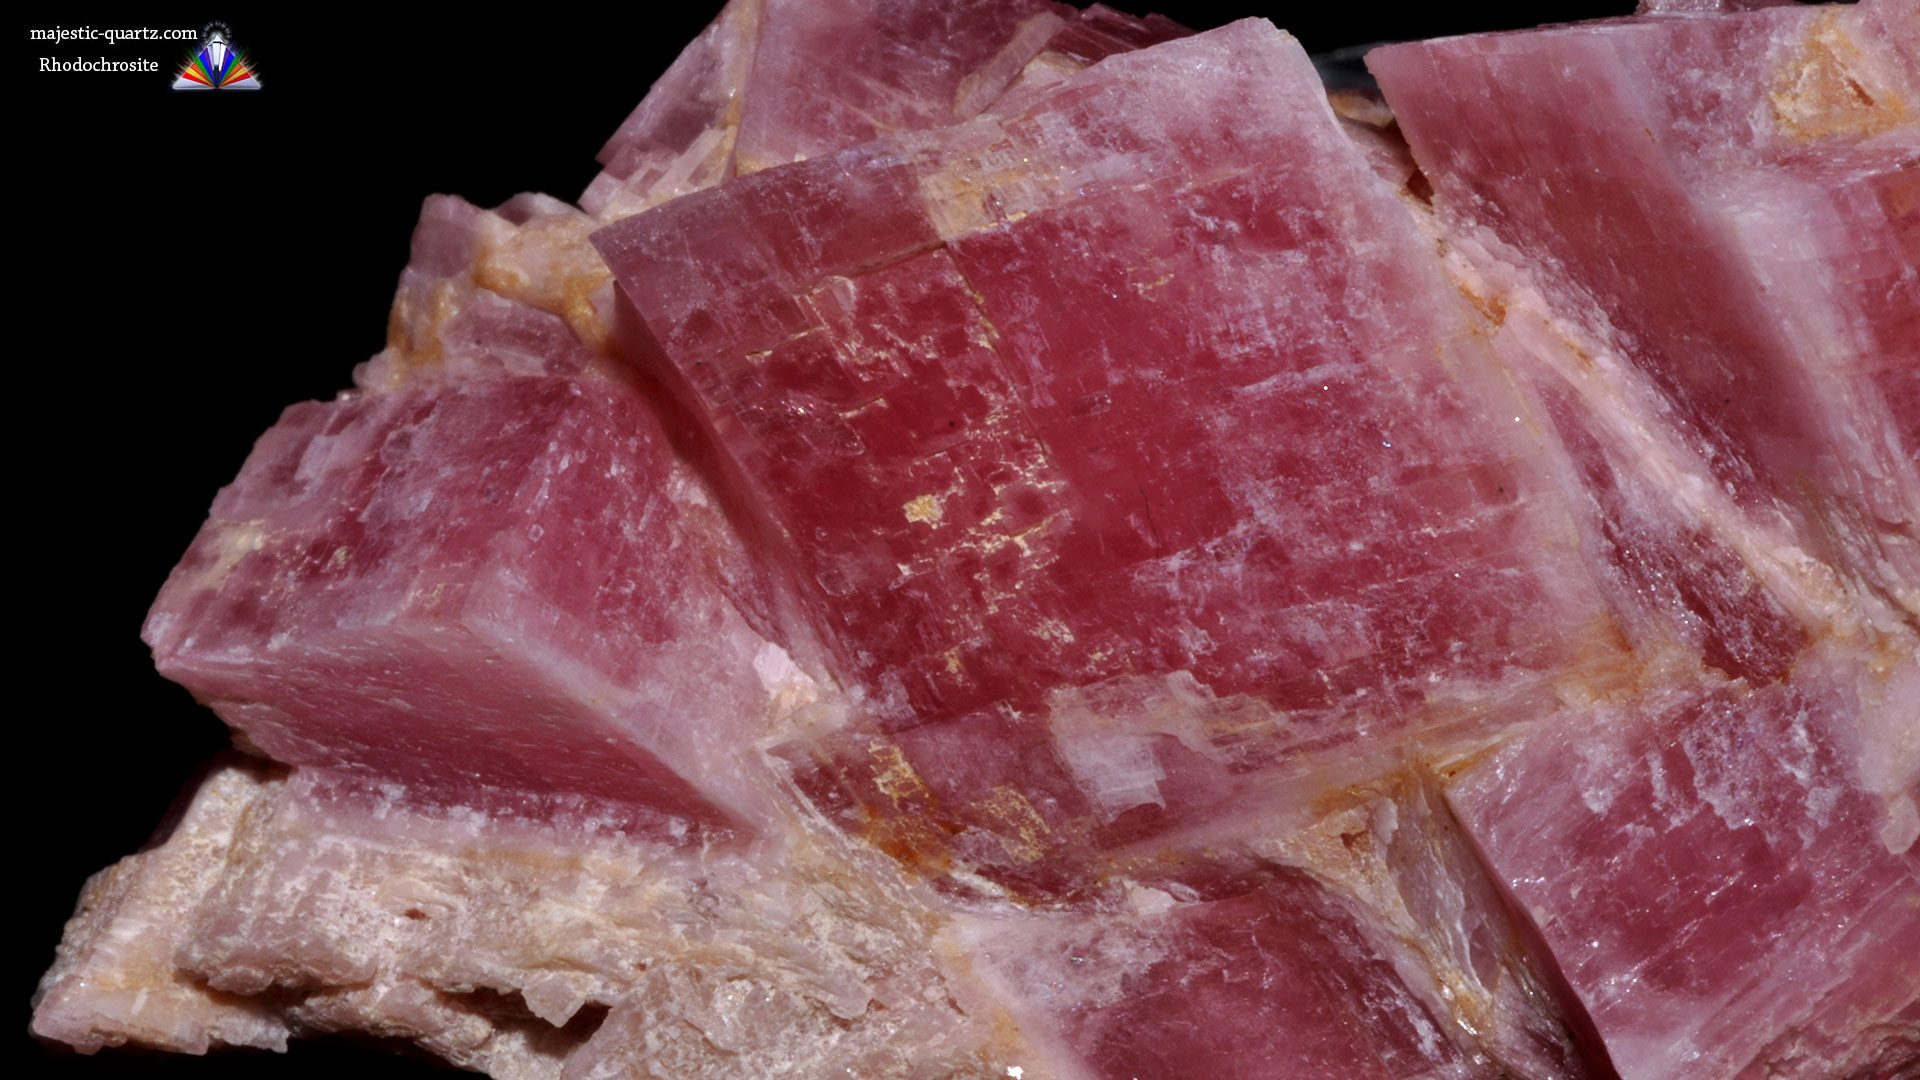 Rhodochrosite Properties and Meaning - Mineral Specimen